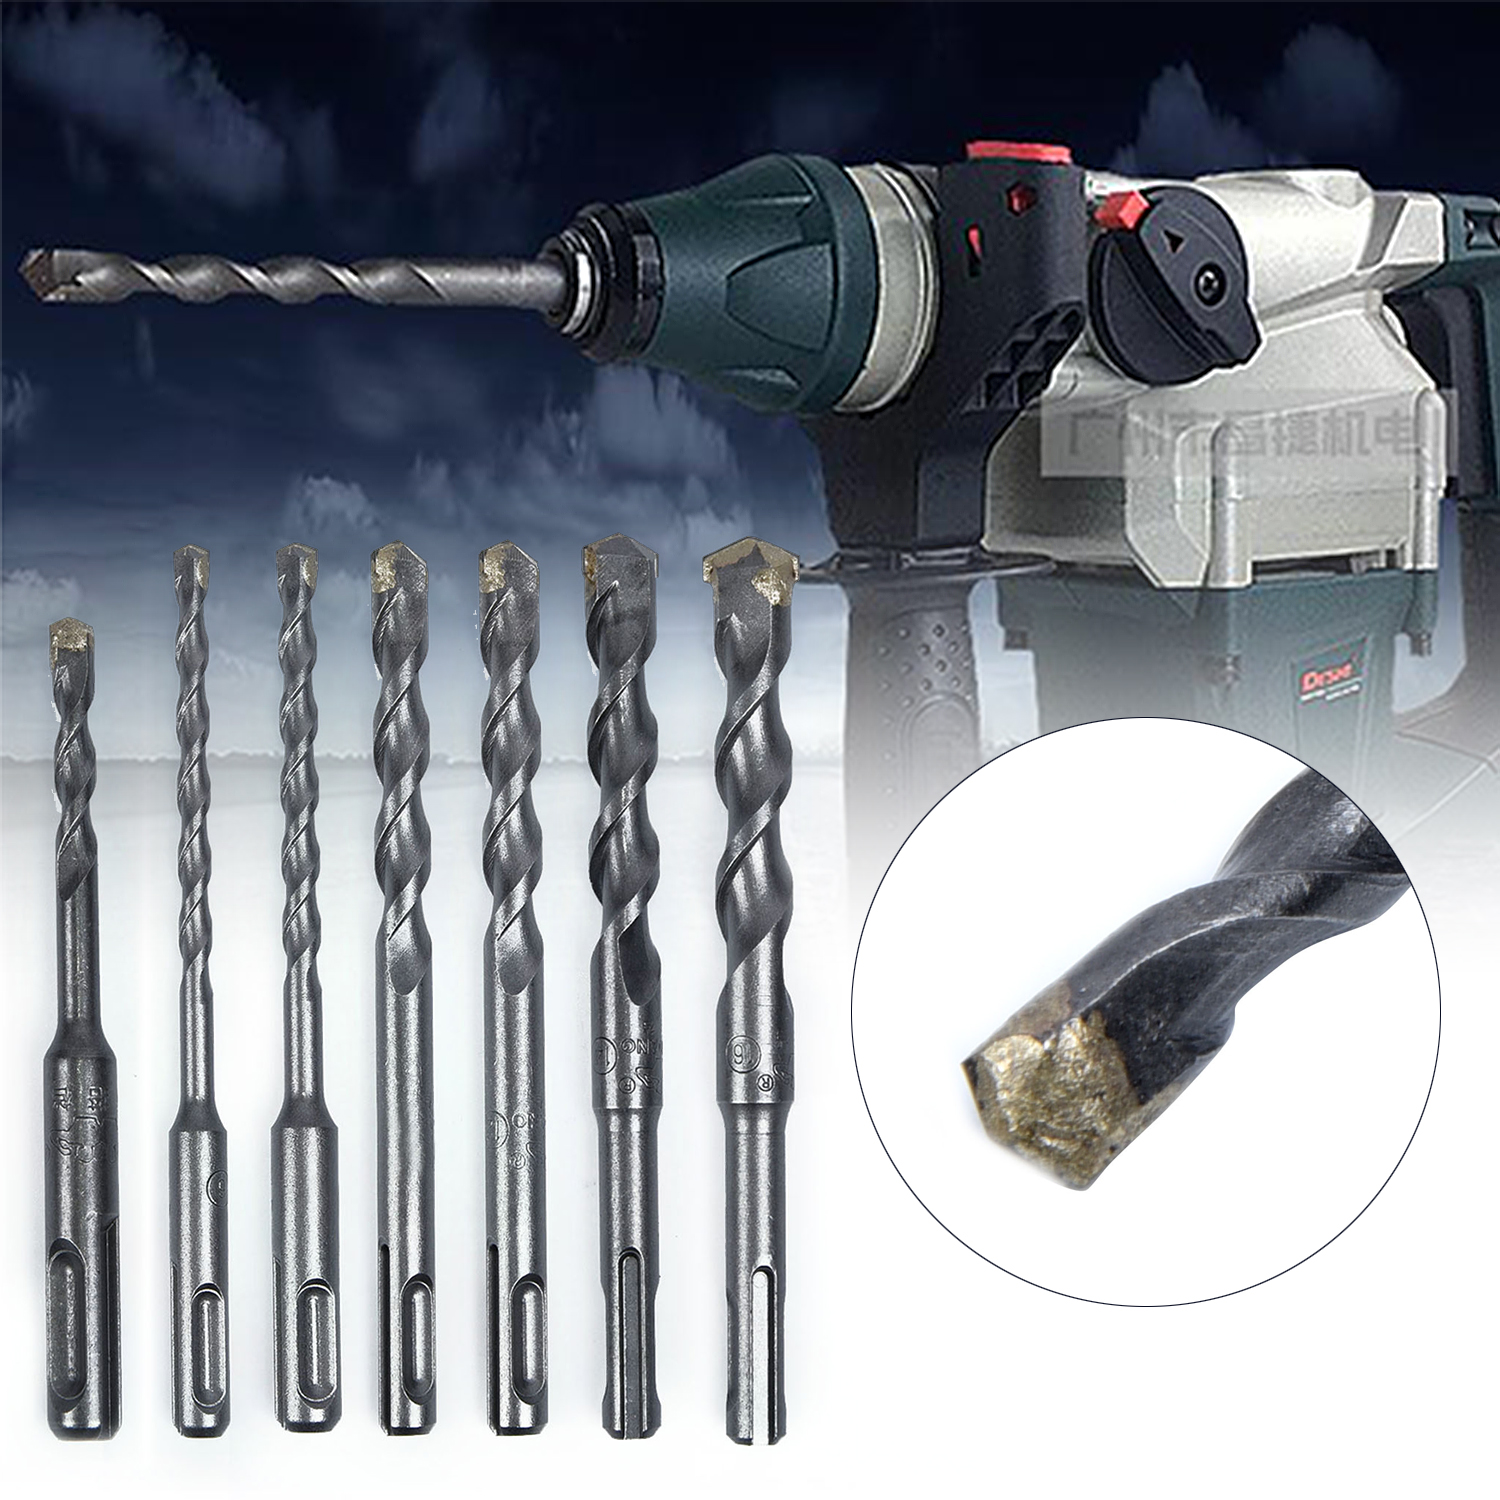 Masonry Round Handle Hammer Drill Bits For Concrete Brick Tungsten Sds Plus Tool Metal Drill Bit Home Garden Supplies in Drill Bits from Tools